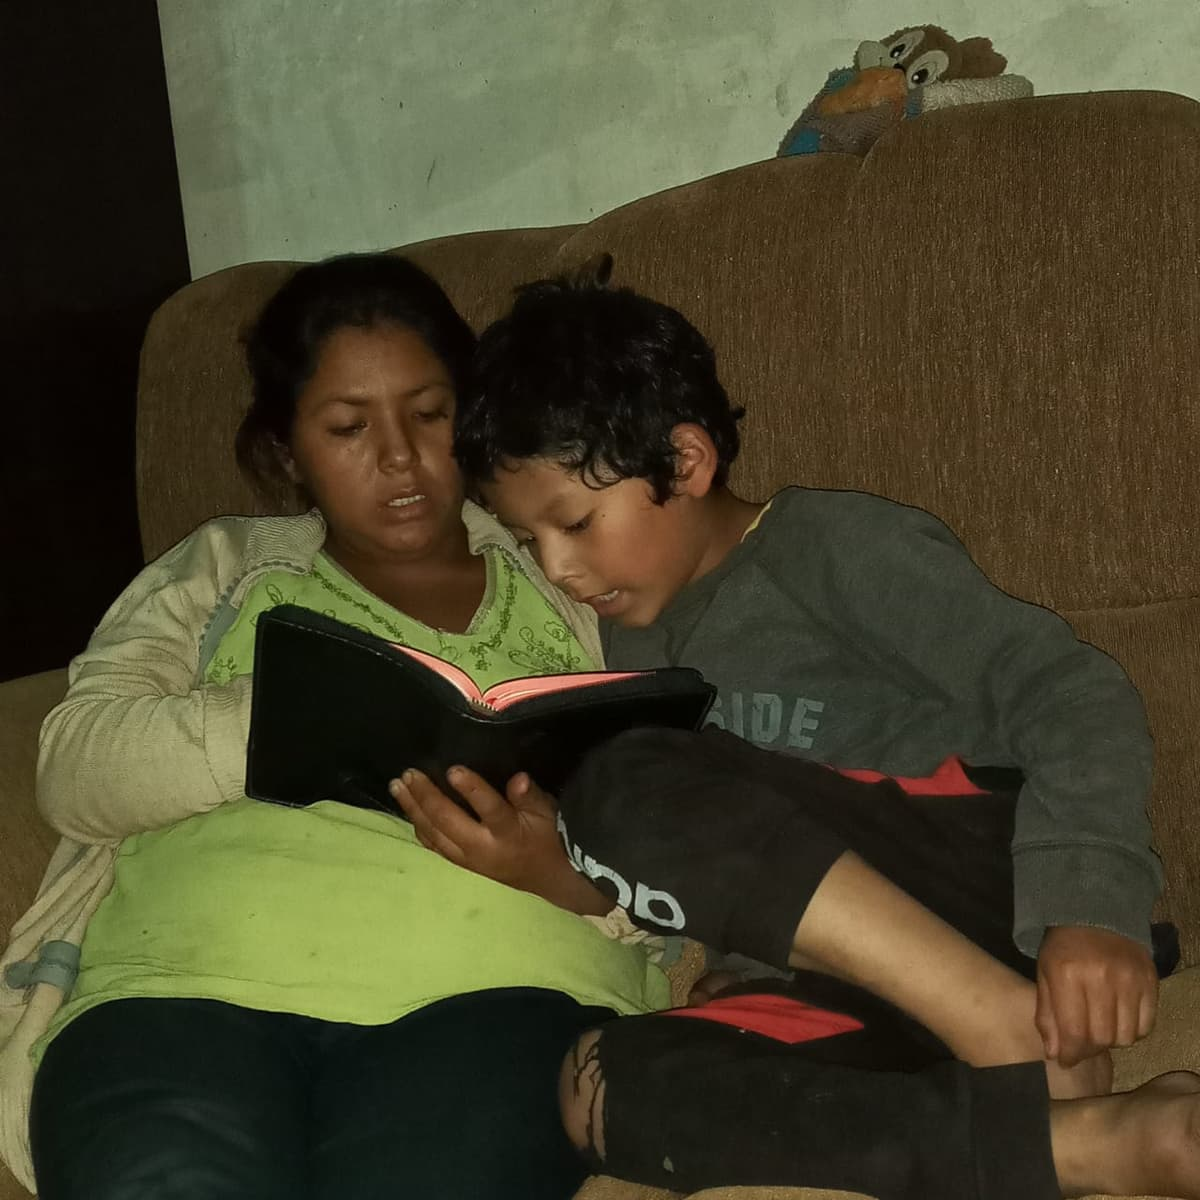 A Bolibian woman sits on a bed with her son and reads the Bible.